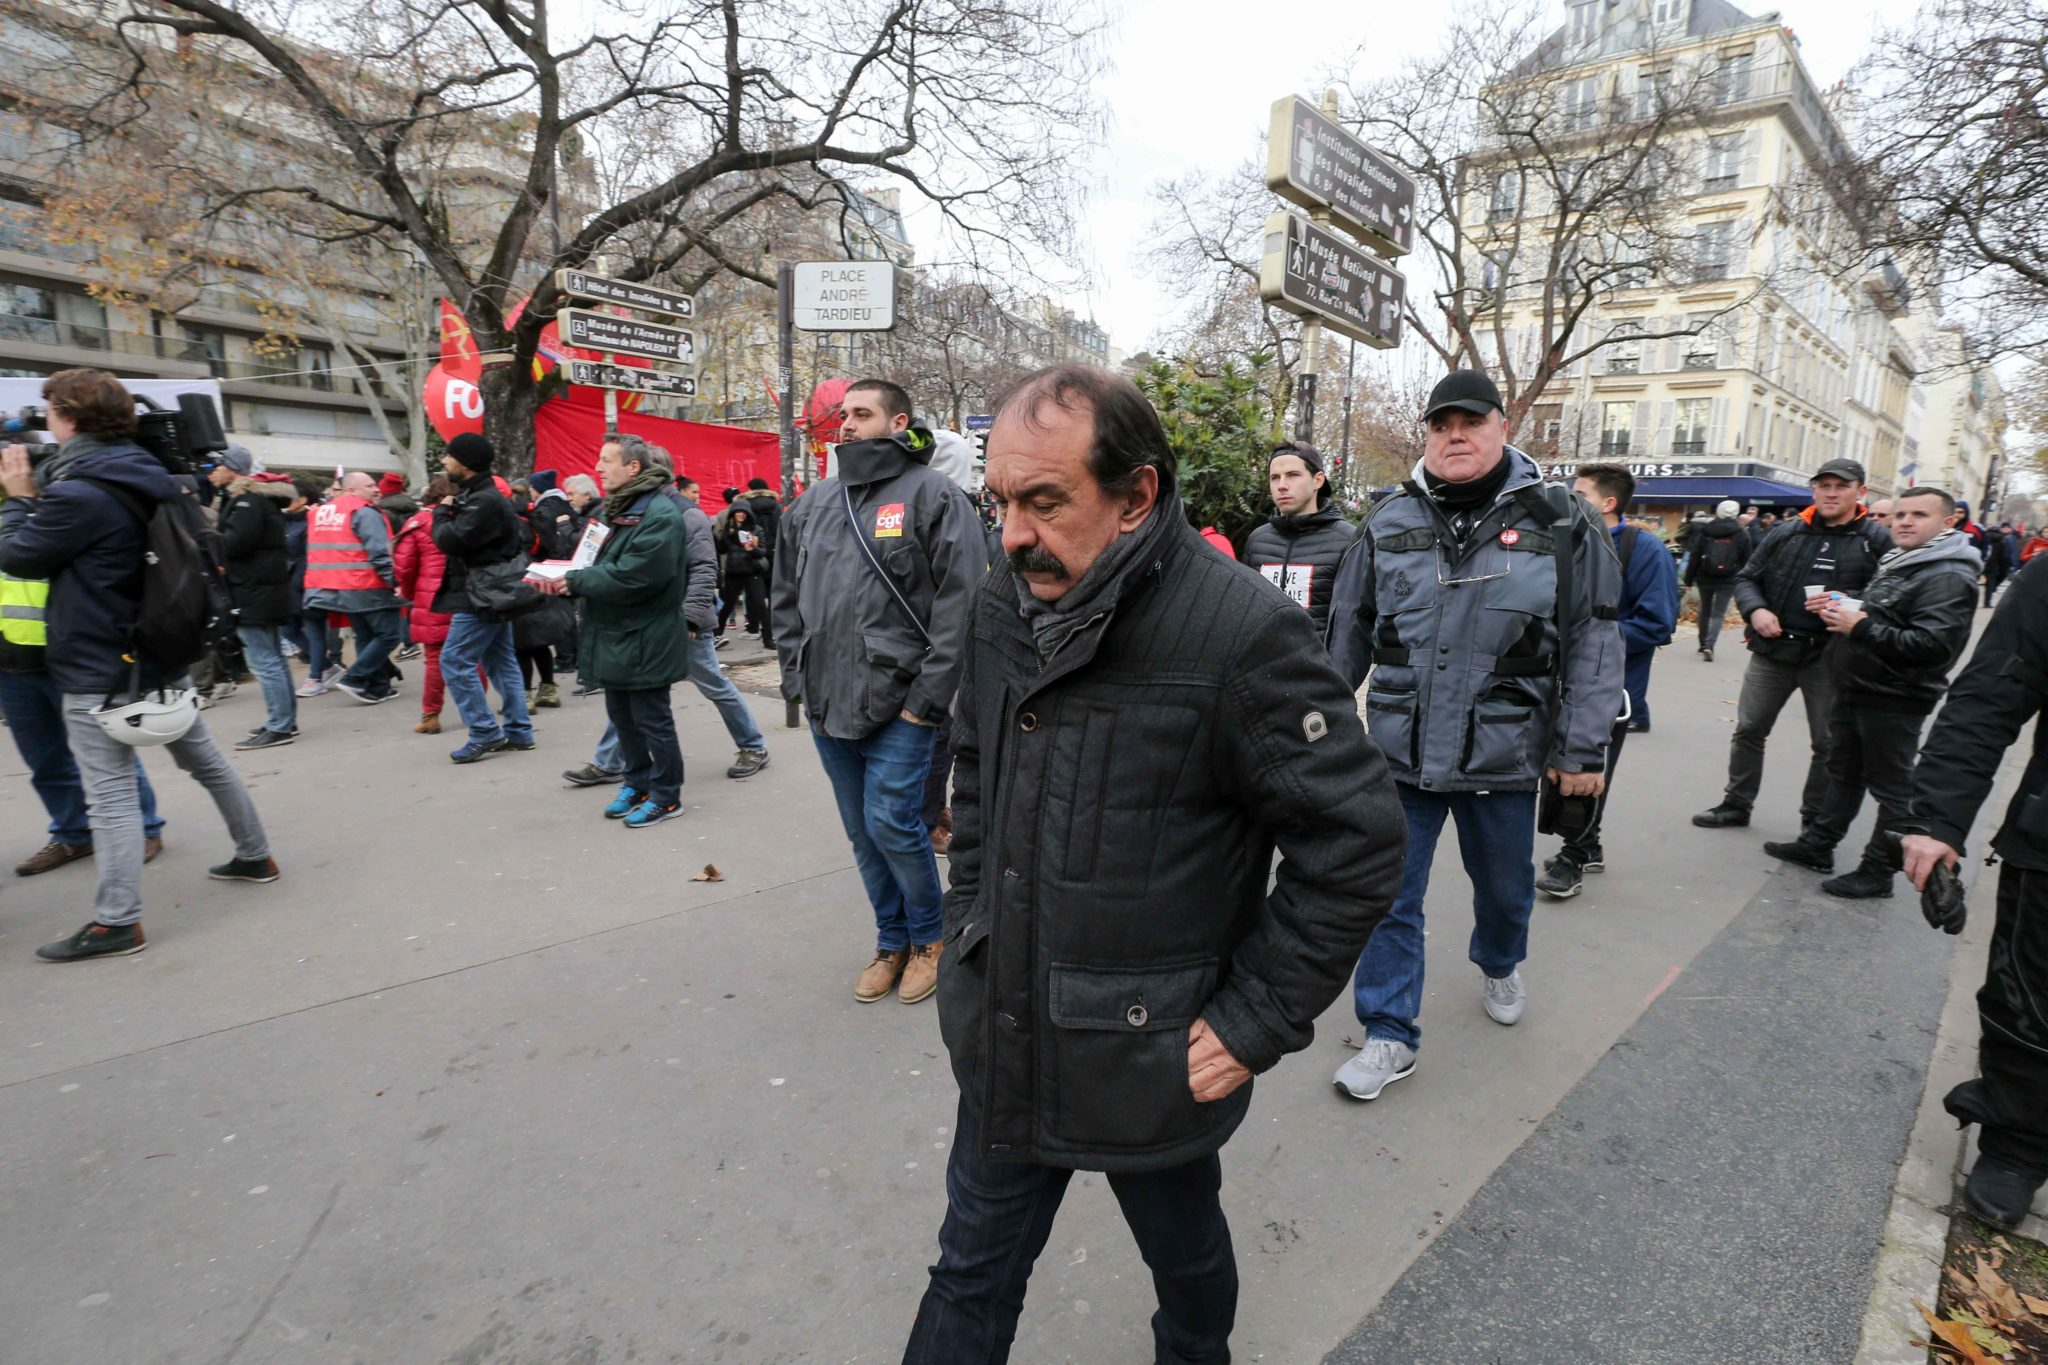 CGT union leader Philippe Martinez (C) arrives at a demonstration on December 10, 2019 in Paris as part of the sixth day of a strike of public transport operators SNCF and RATP employees over French government's plan to overhaul the country's retirement sy